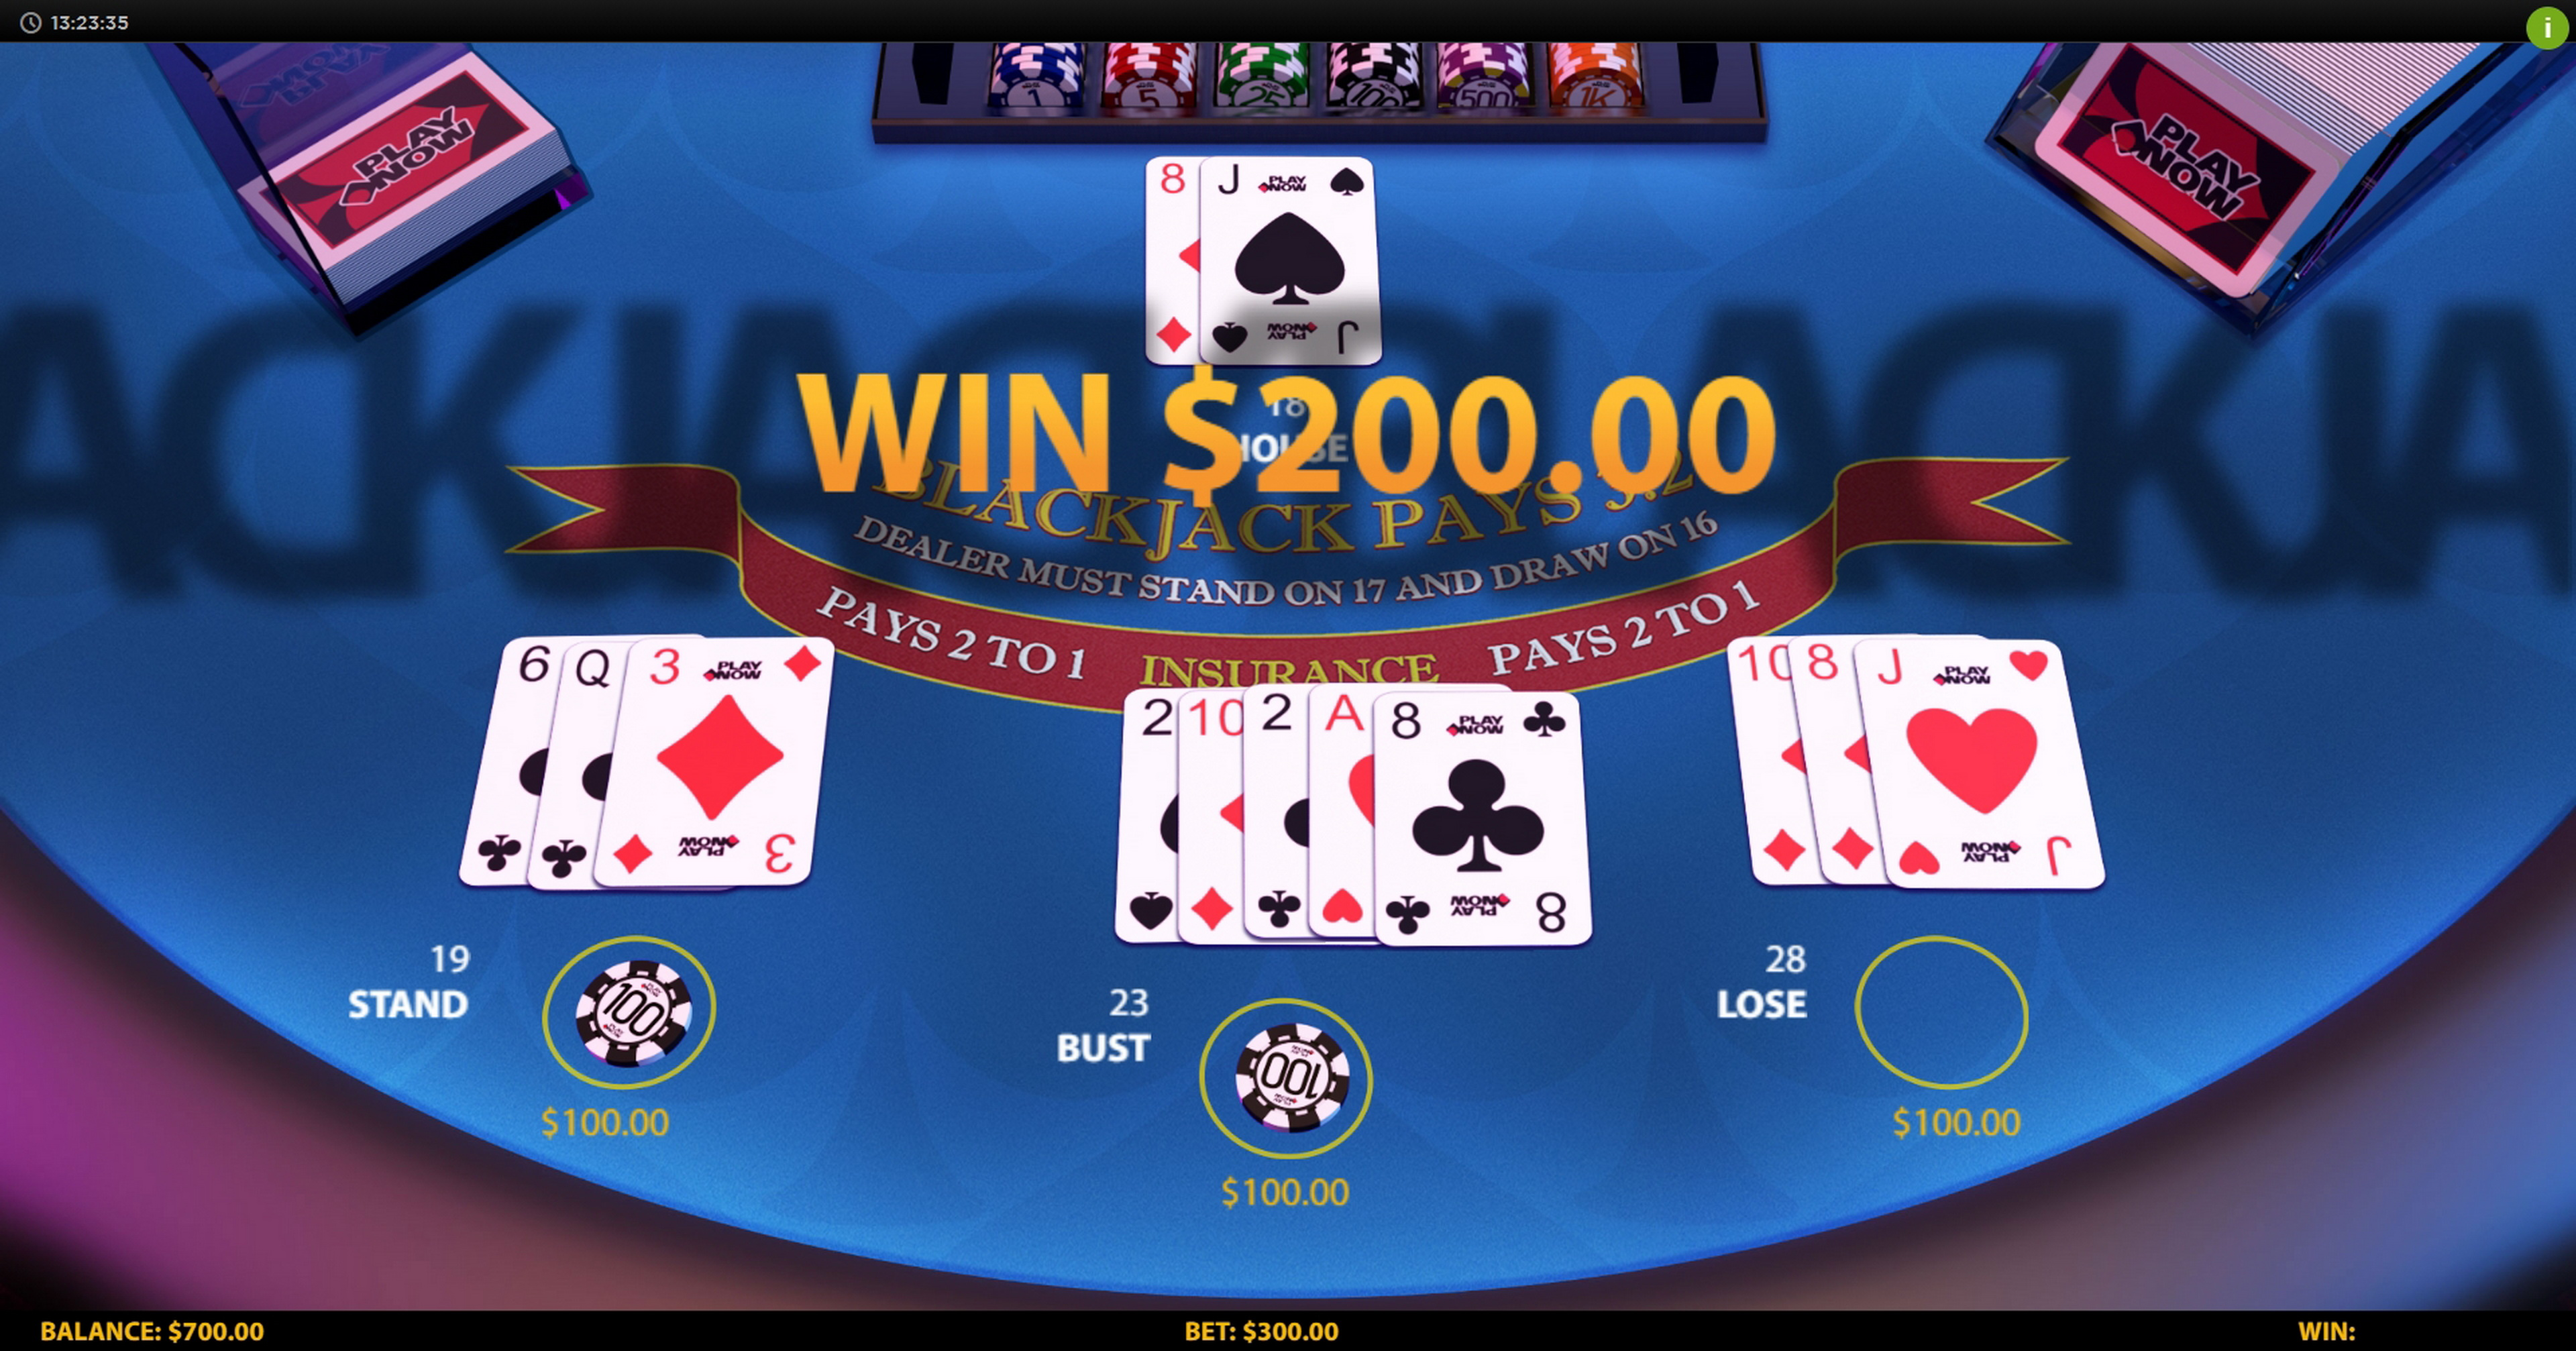 Win Money in 3 Hand Blackjack (HungryBear) Free Slot Game by HungryBear